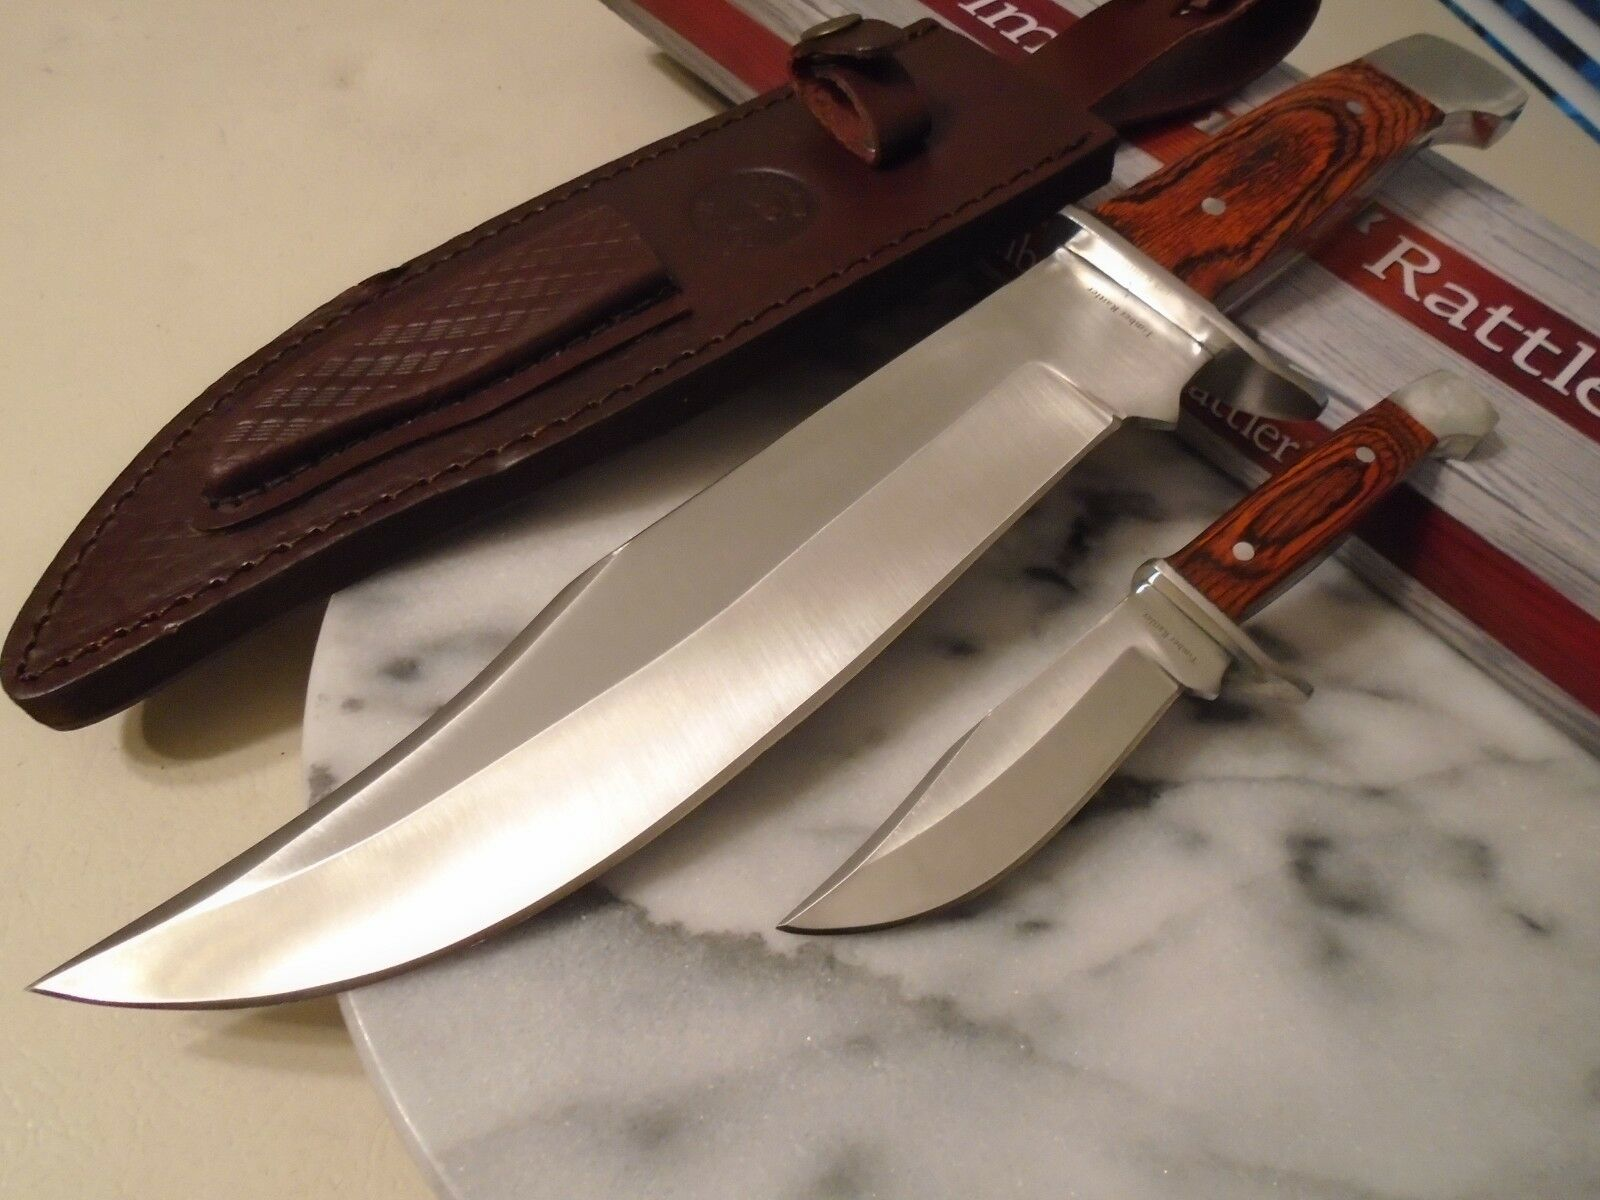 Timber Rattler Big Duo Hunter Bowie Combat Knife/Knives 2Pc